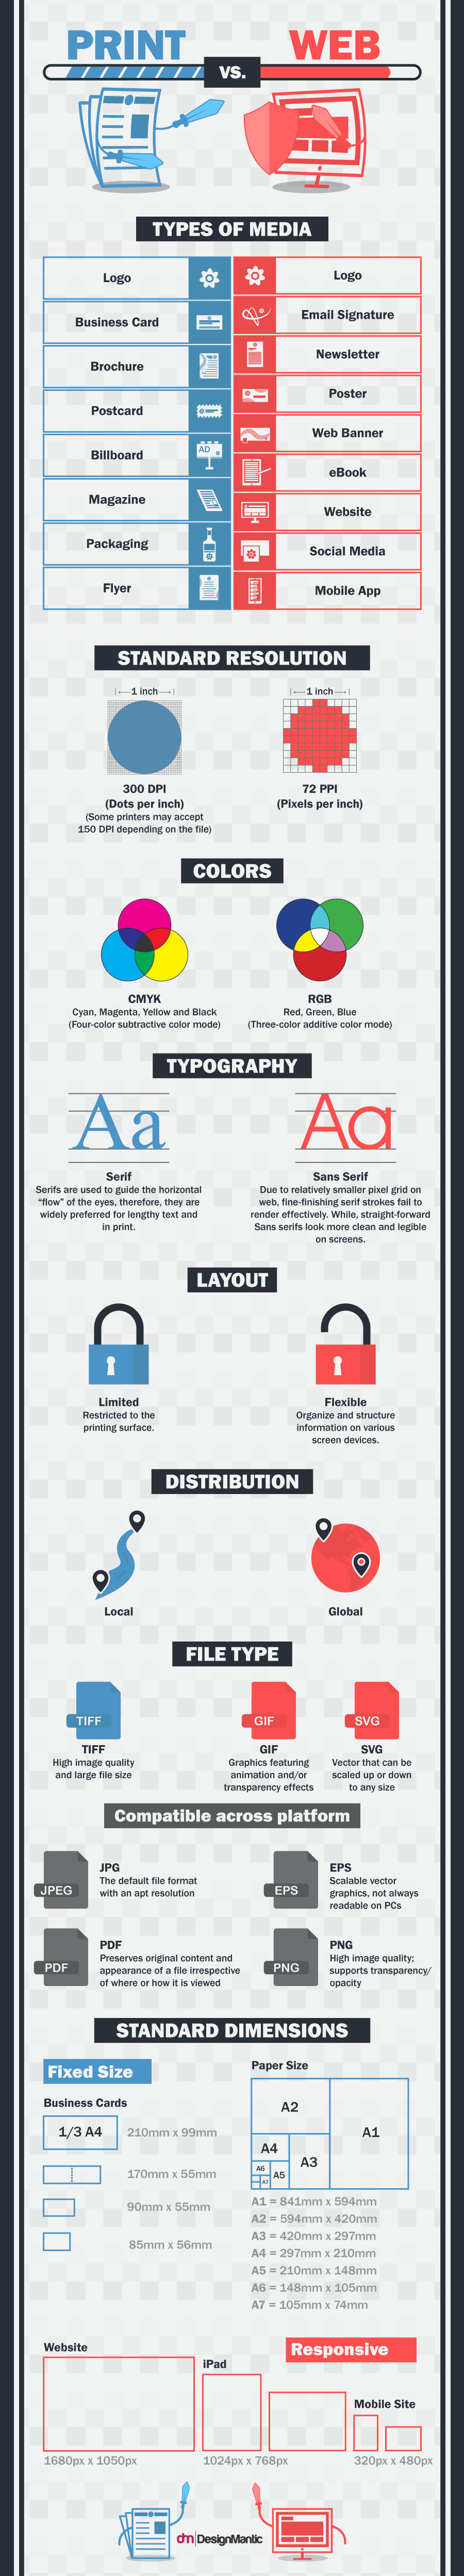 Print Design vs. Web Design: What Makes Them Different?